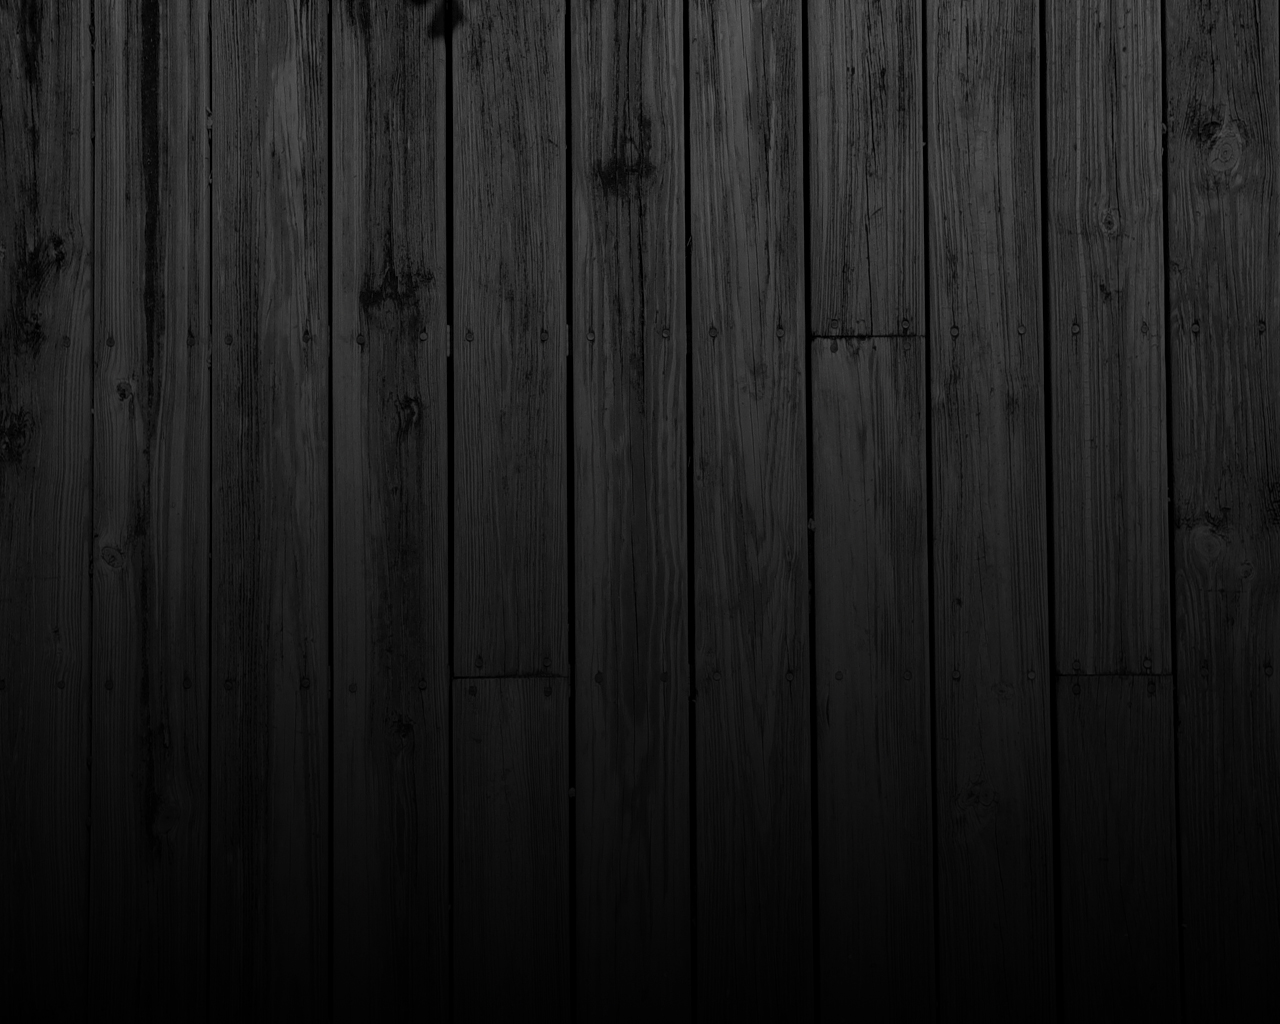 Black Wood Planks ~ Wood plank wallpaper wallpapersafari